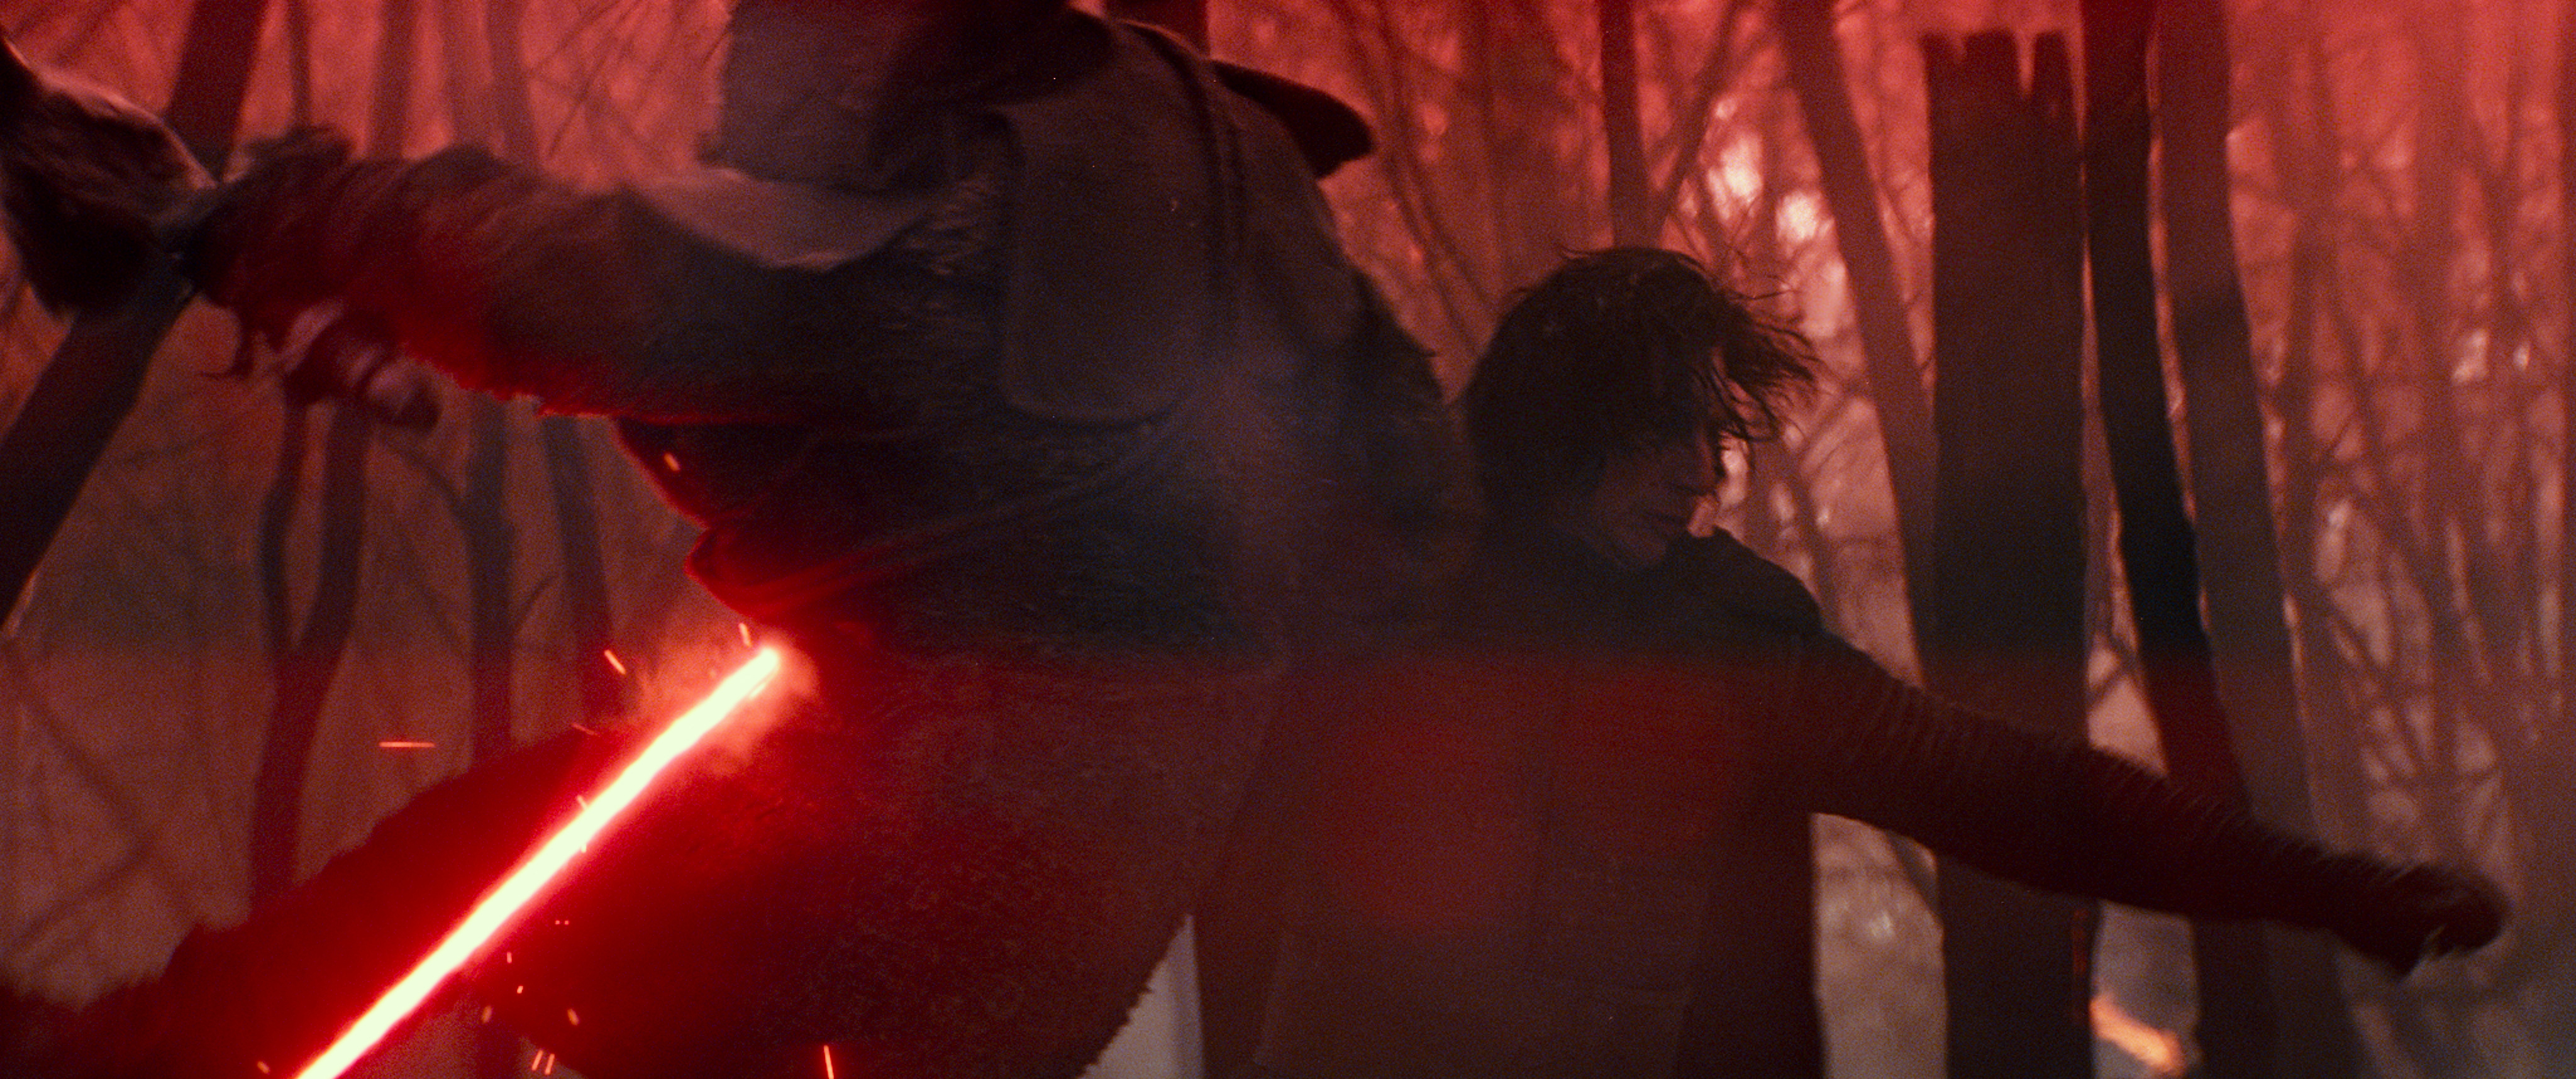 star-wars-the-rise-of-skywalker-official-high-resolution-images-13